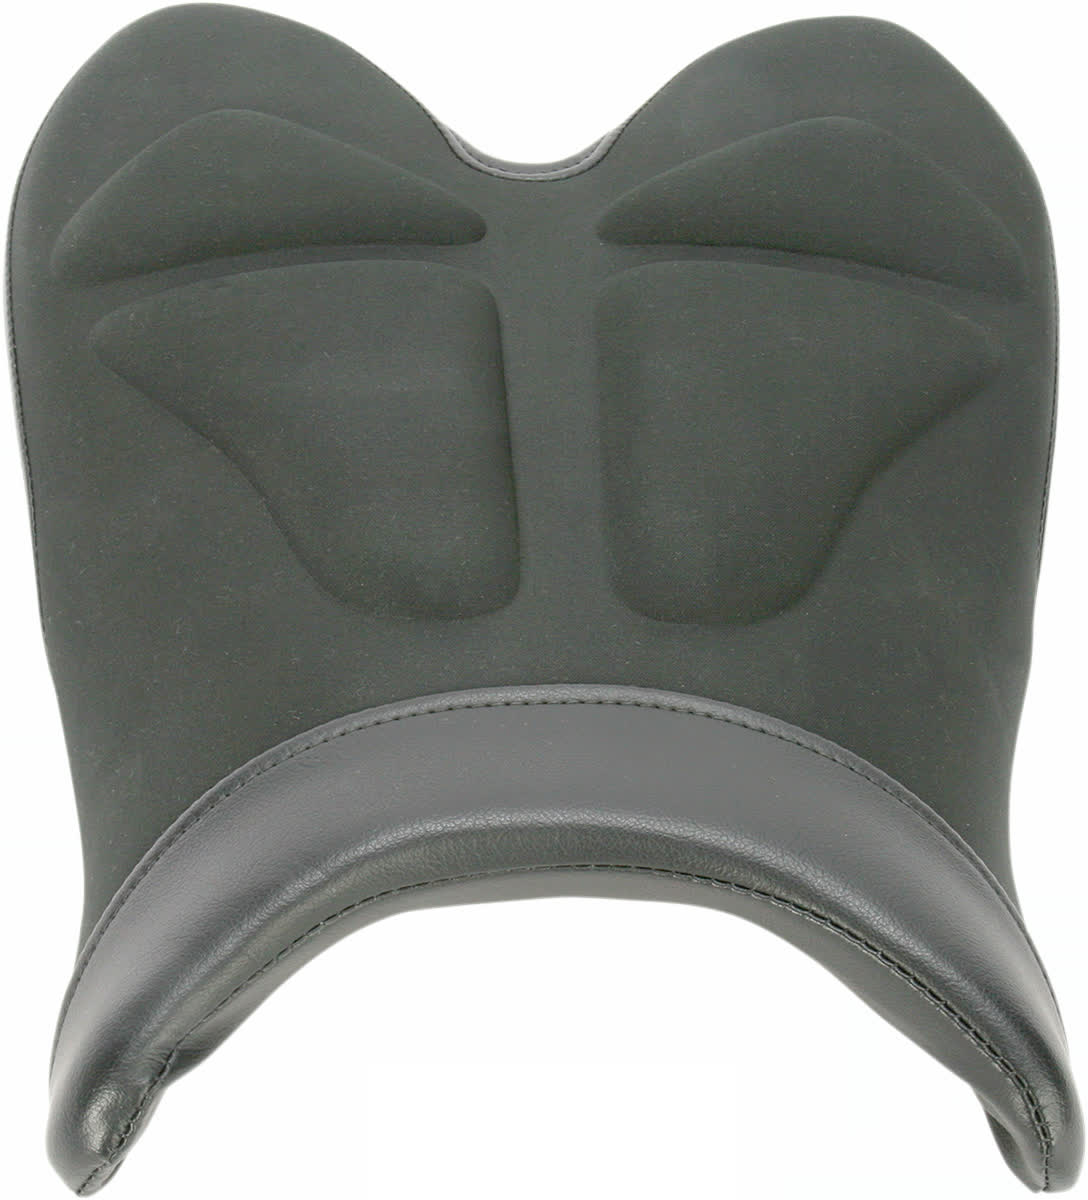 Saddlemen 0810-Y116 Gel-Channel Tech One-Piece Solo Seat with Rear Cover